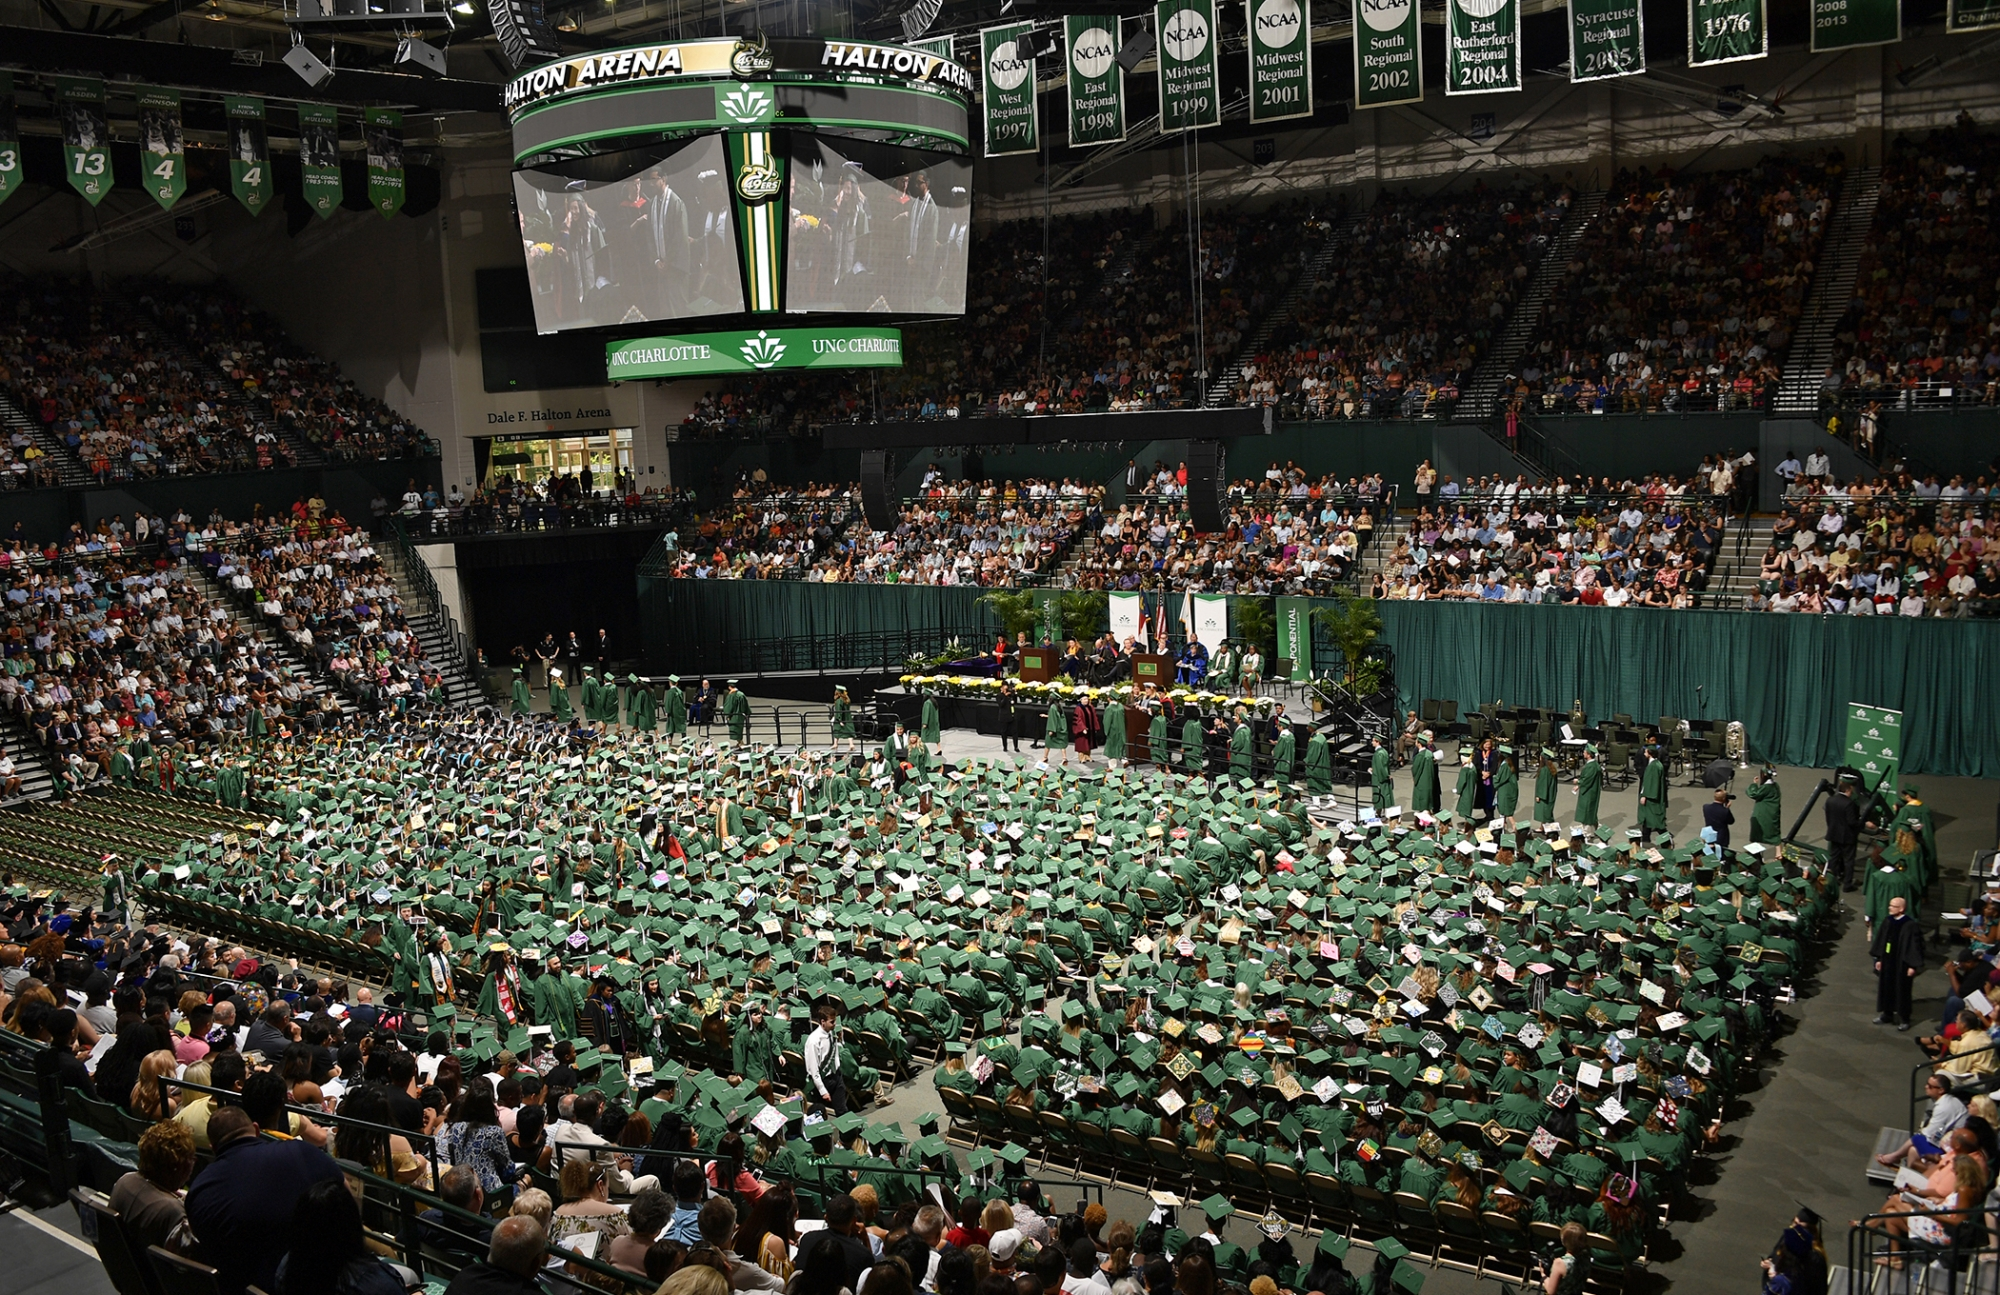 UNC Charlotte commencement at Dale F. Halton Arena